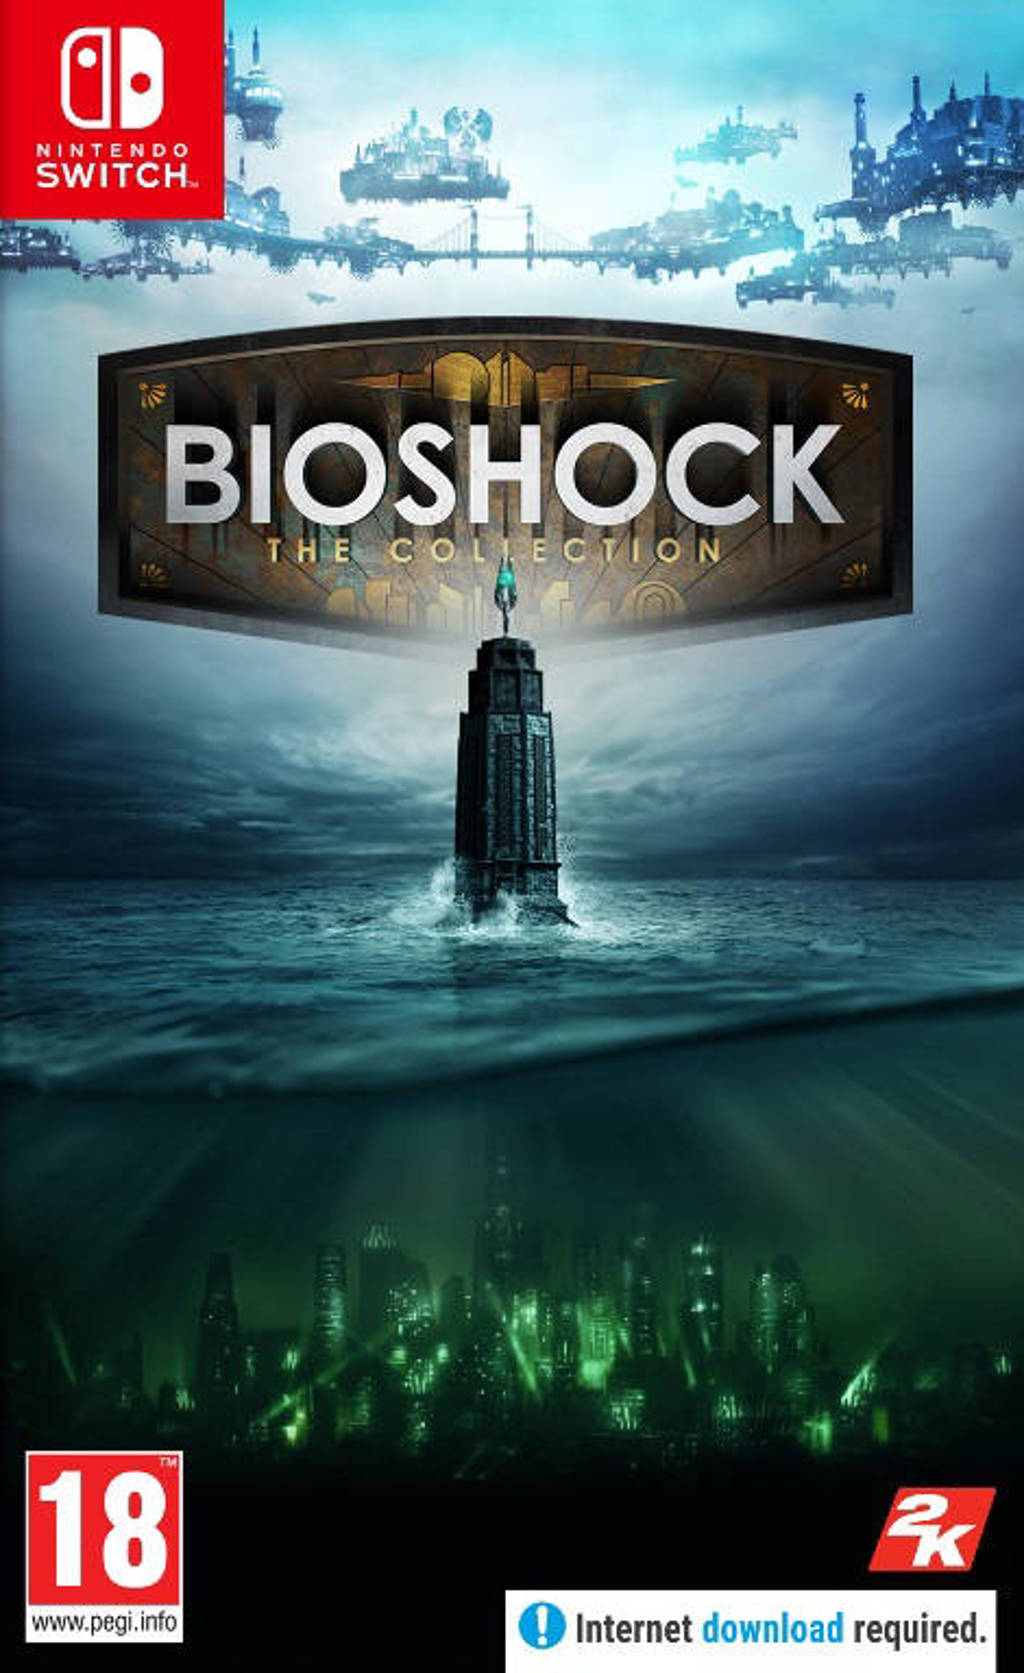 Bioshock collection (Nintendo Switch)